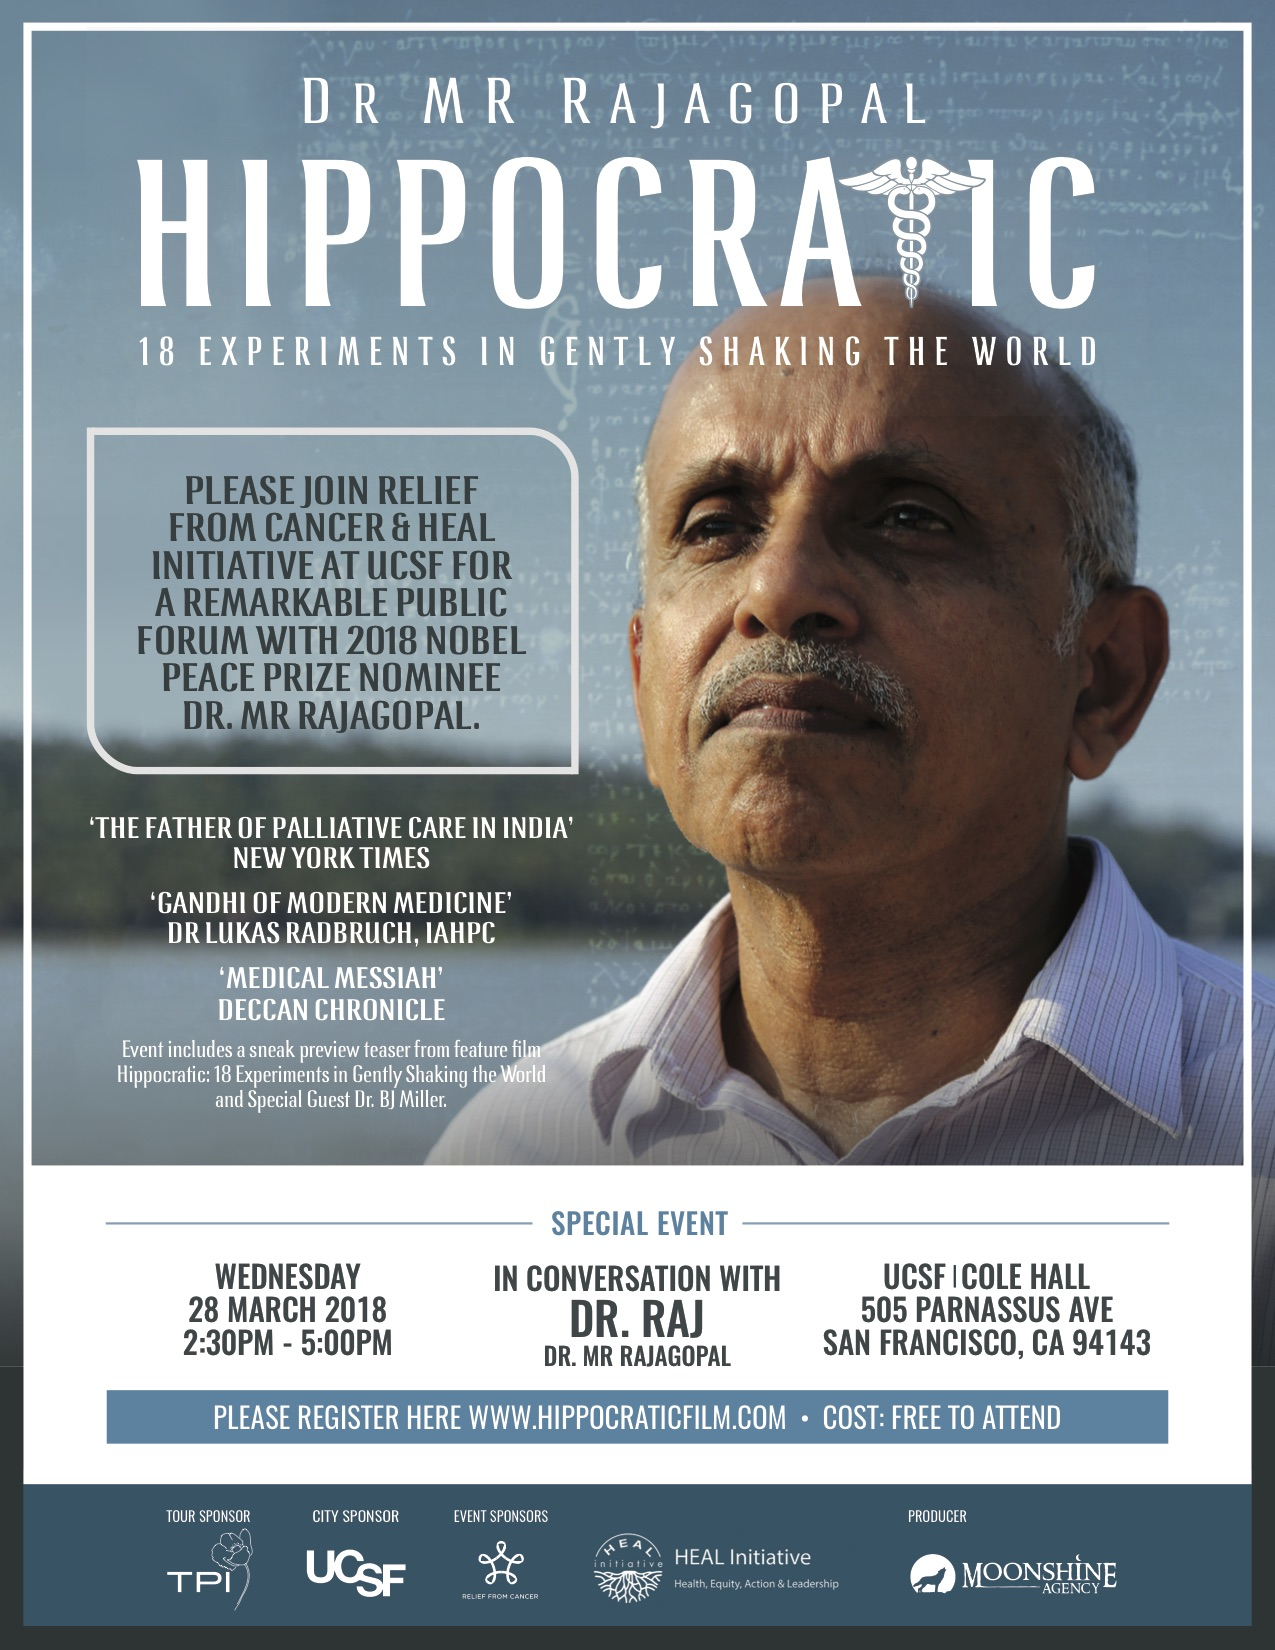 Please Join Relief From Cancer & HEAL Initiative at UCSF for a remarkable Public Forum with 2018 Nobel Peace Prize Nominee Dr. MR Rajagopal